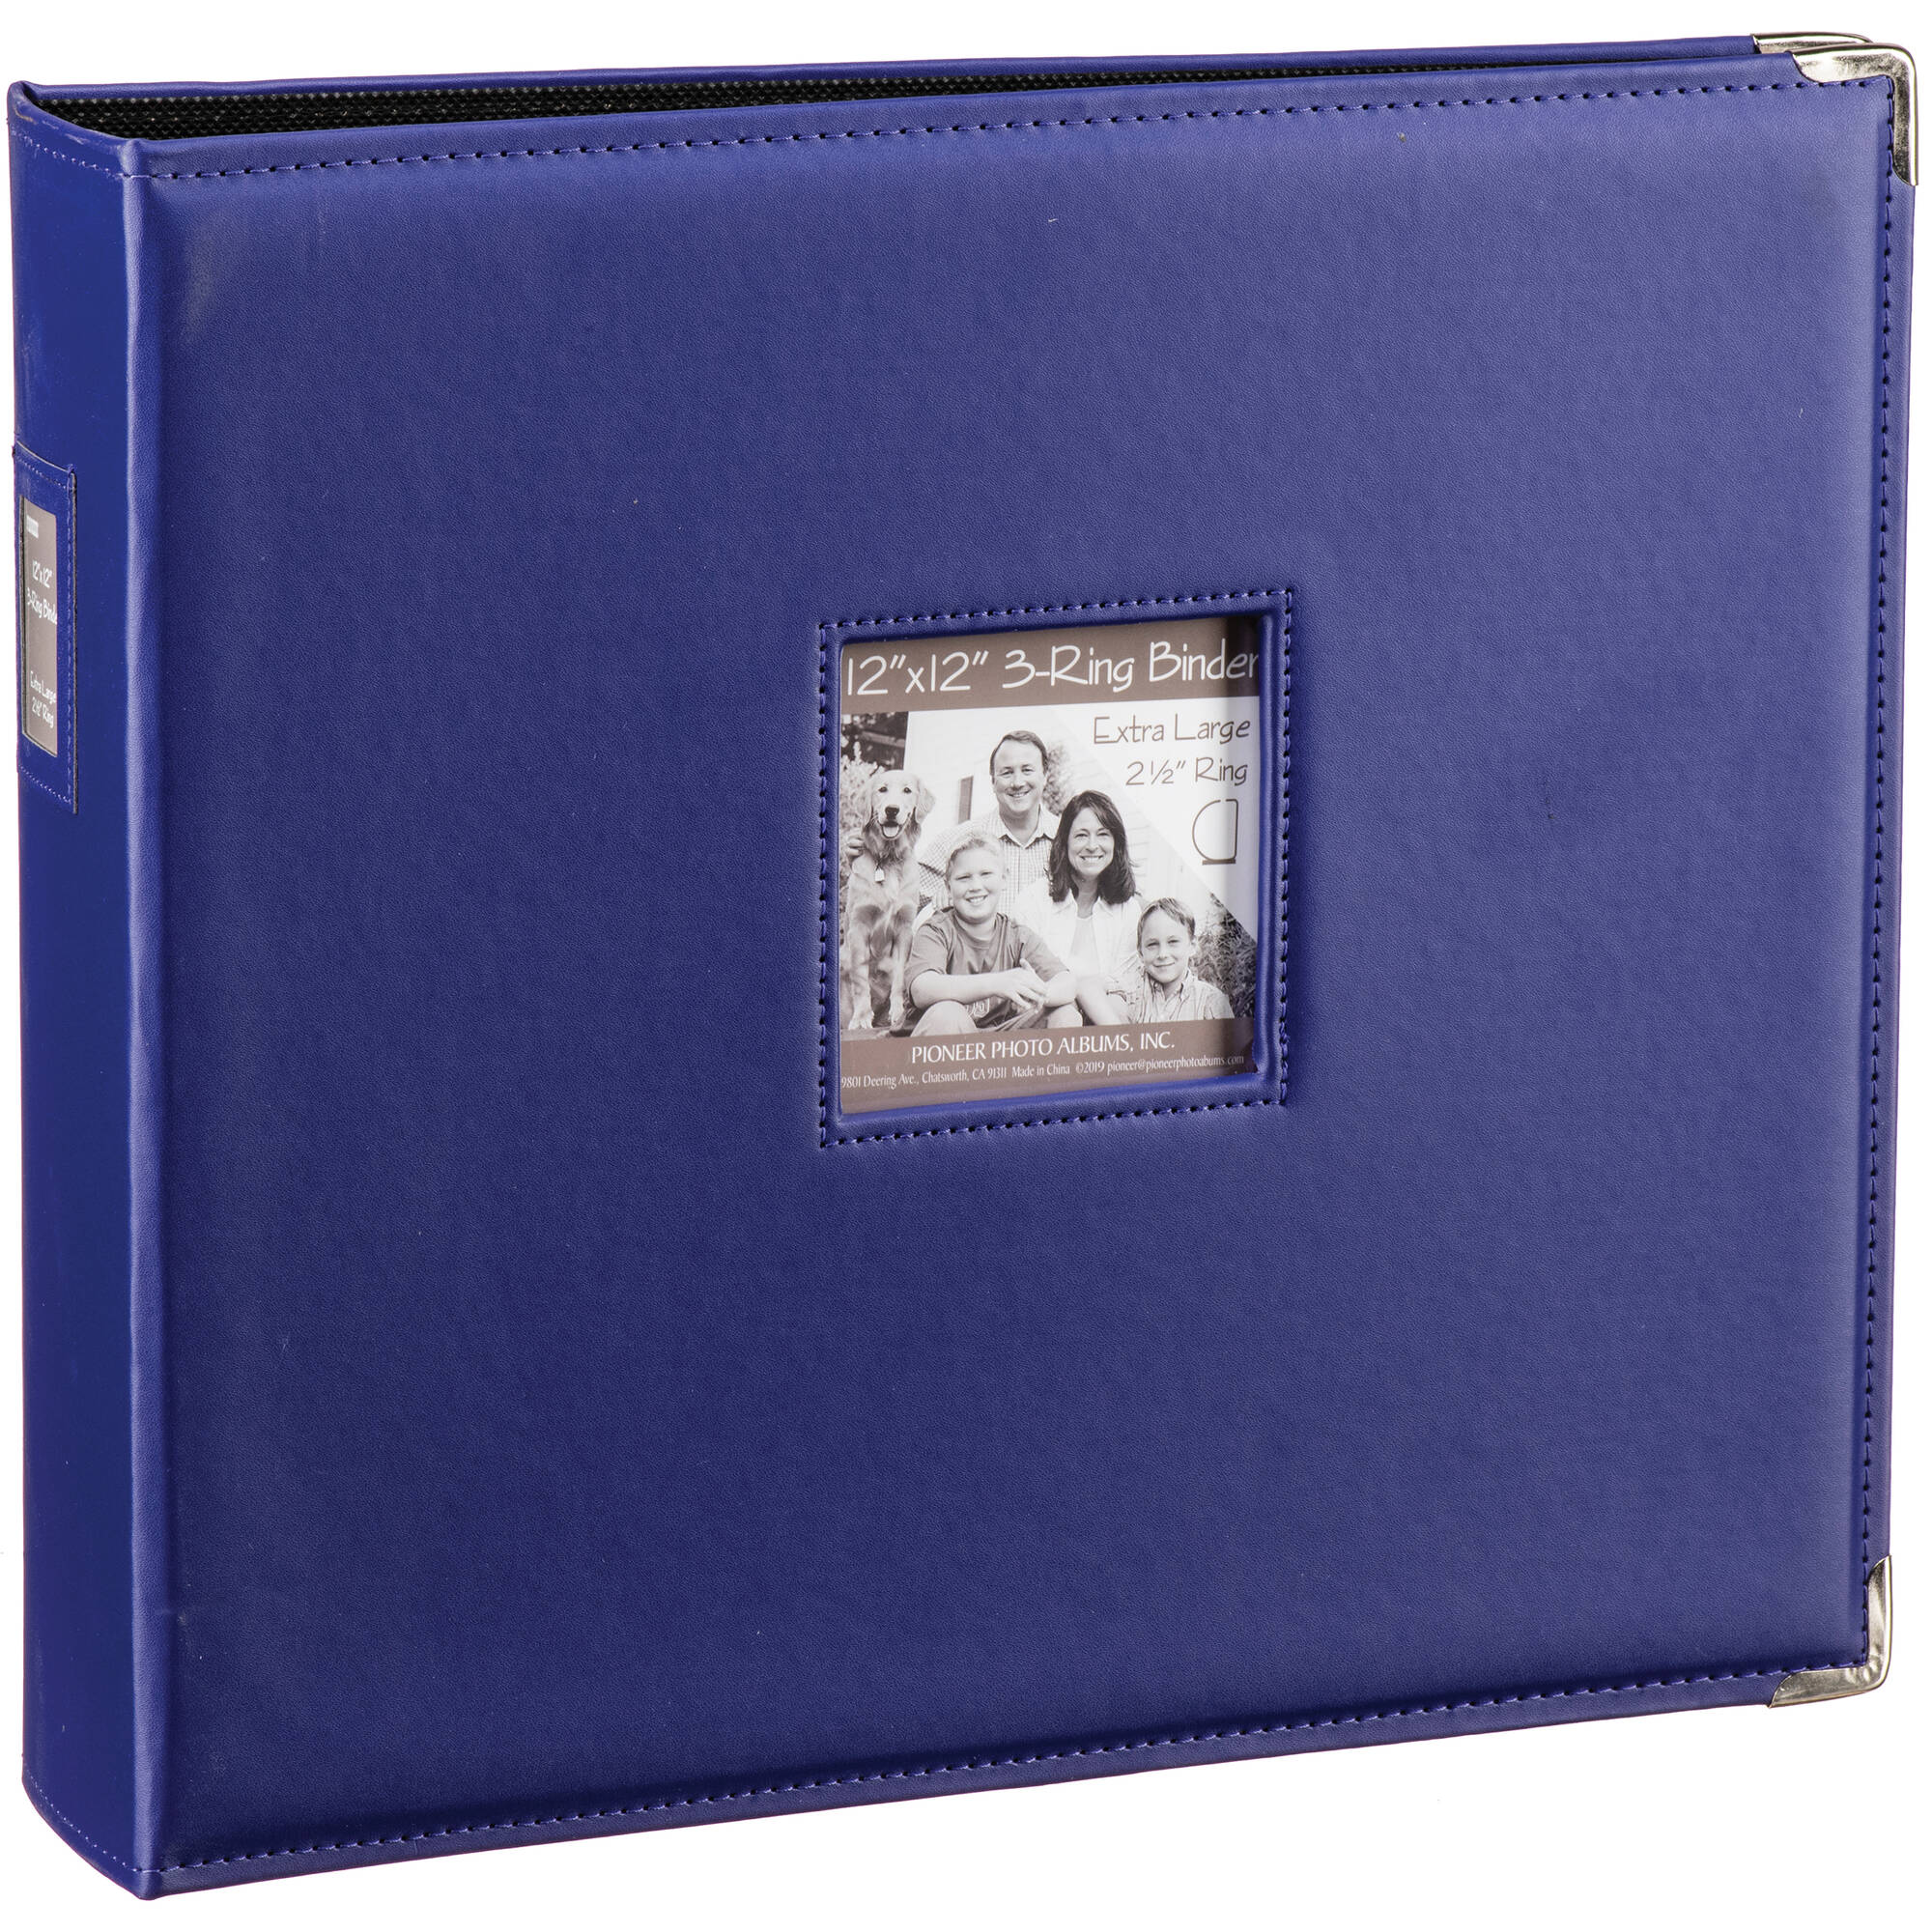 Pioneer Photo Albums T 12jf 12x12 3 Ring Binder T12jfcpr